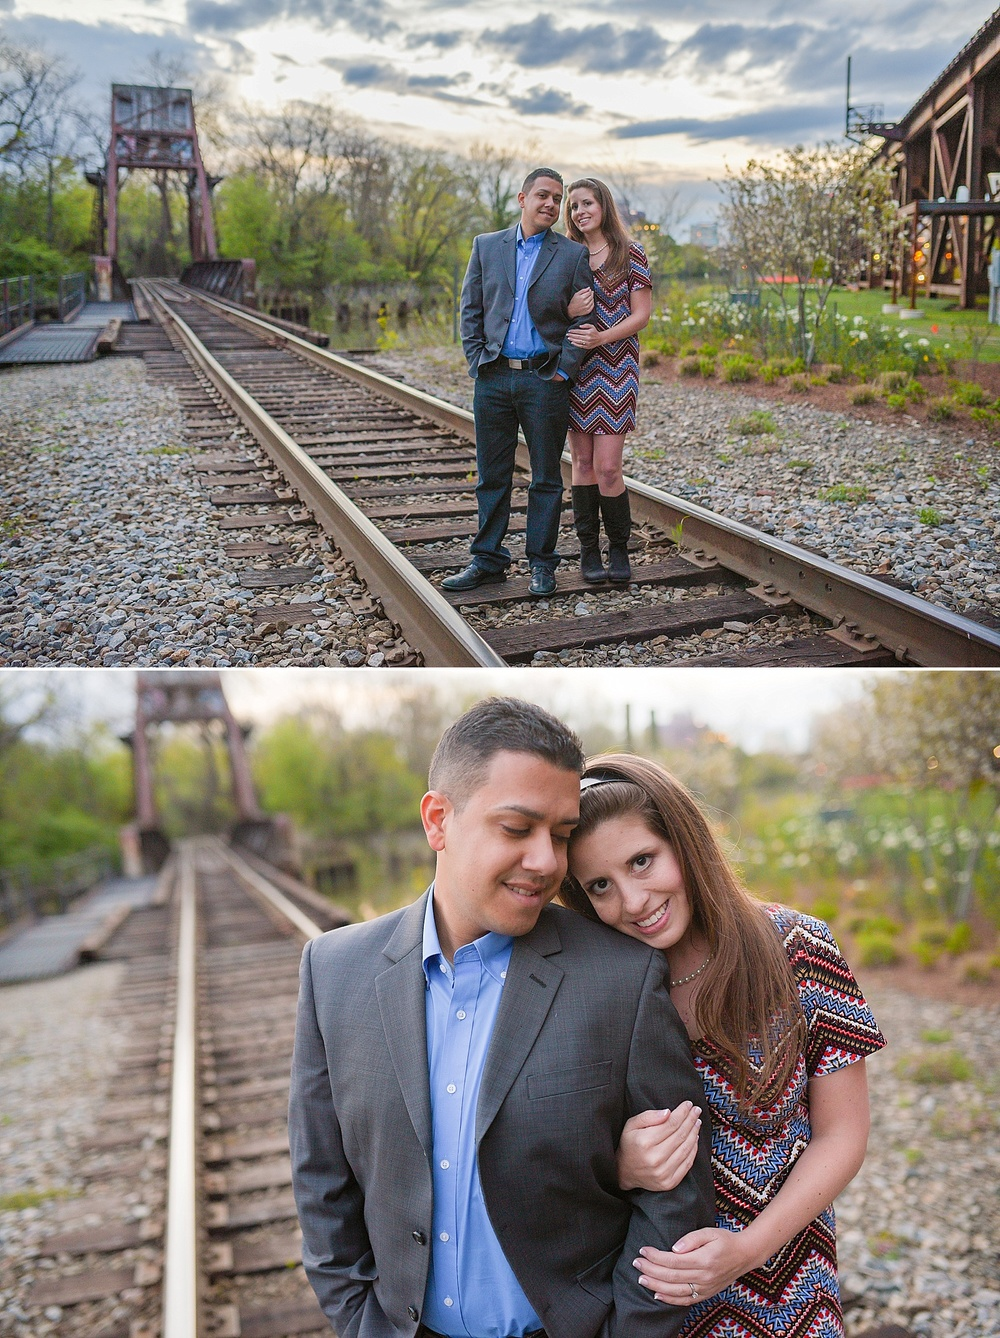 belle-isle-engagement-session-rva-richmond_0014.jpg